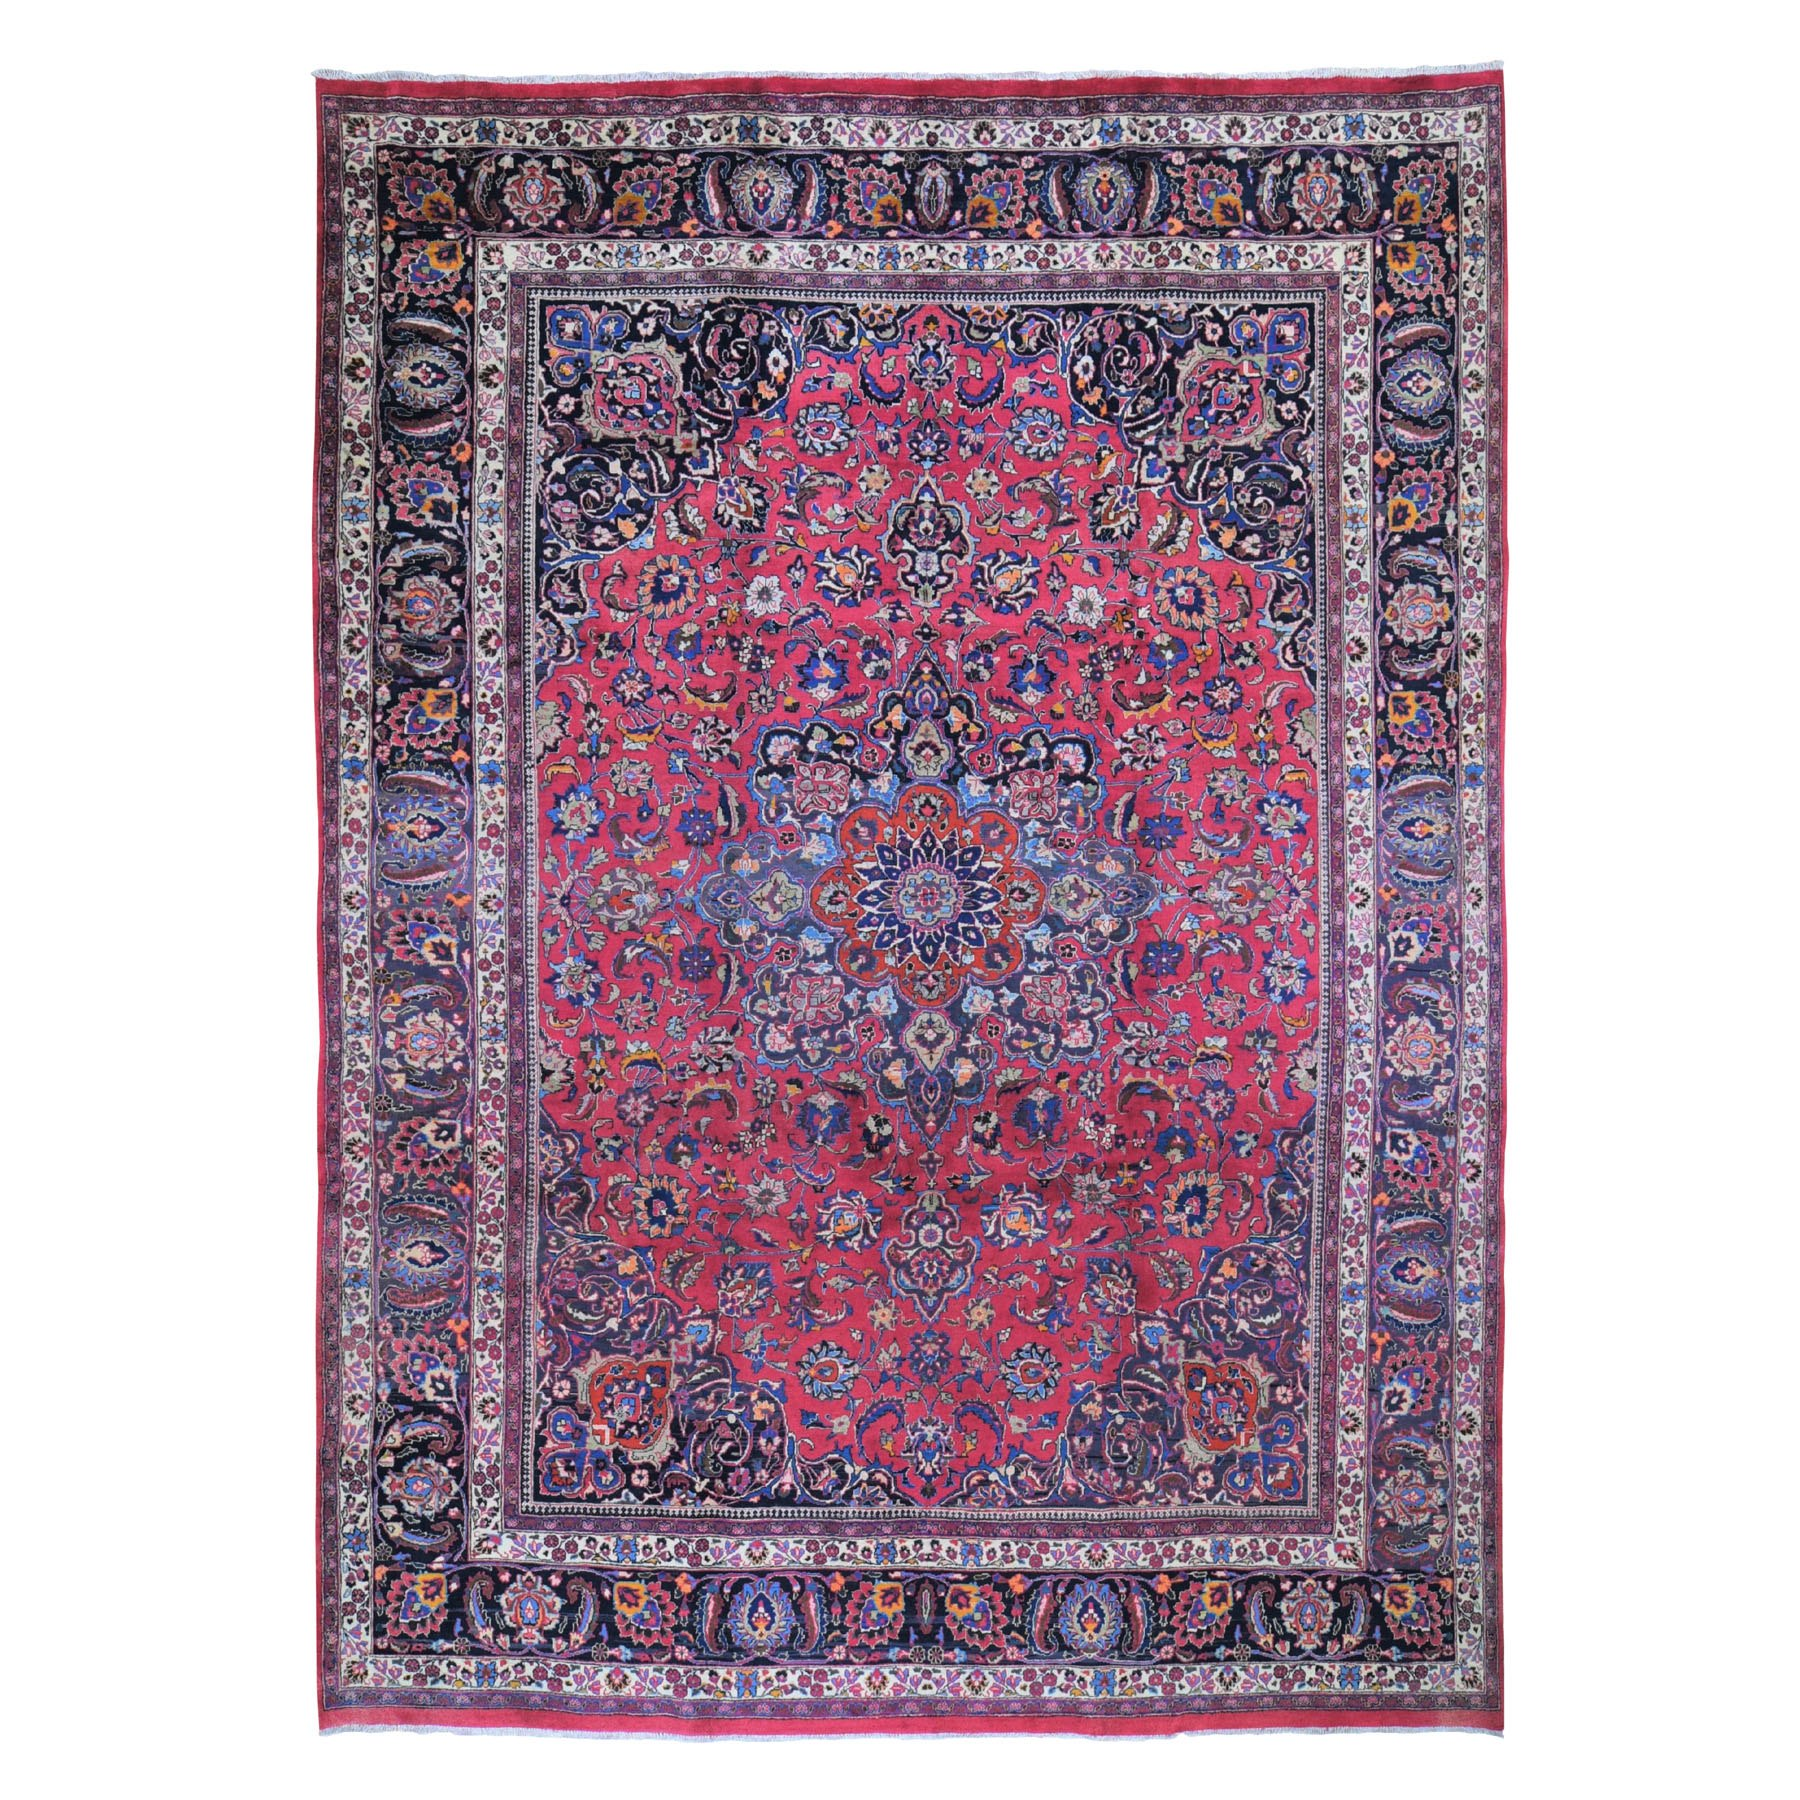 10'x13' Red Vintage Persian Mashad Clean Exc Cond Hand Knotted Oriental Rug 49565